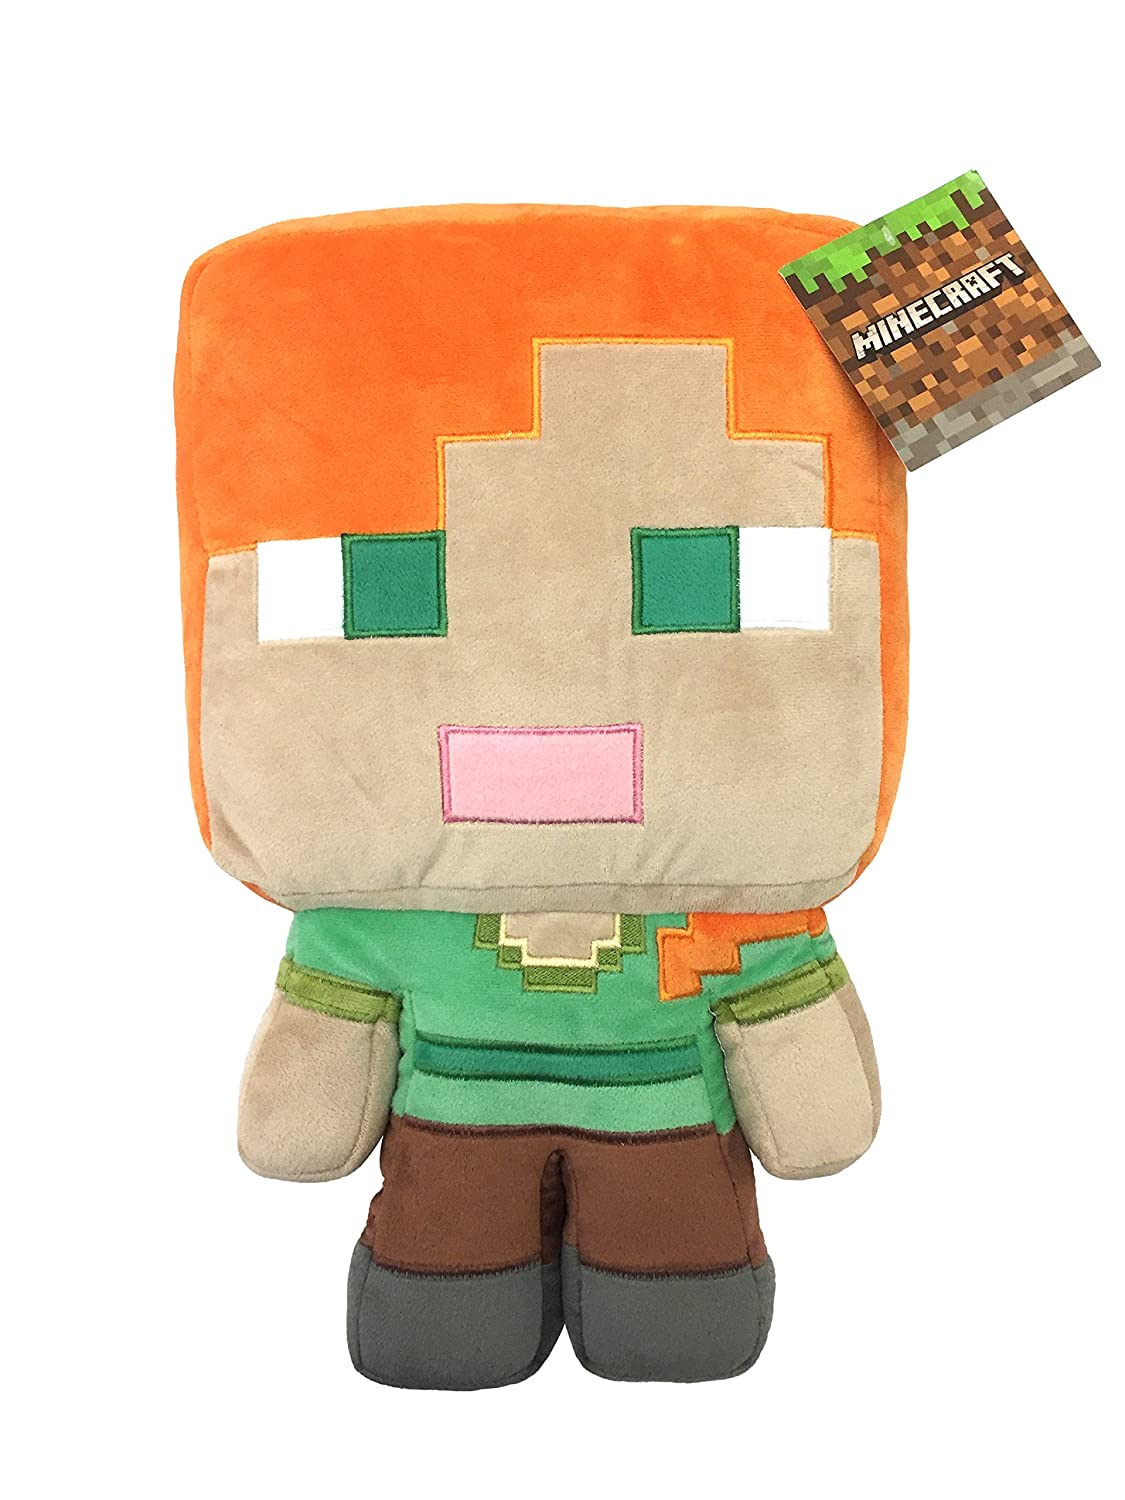 Jay Franco Mojang Minecraft Plush Stuffed Alex Pillow Buddy - Kids Super Soft Polyester Microfiber, 16 inch (Official Product)